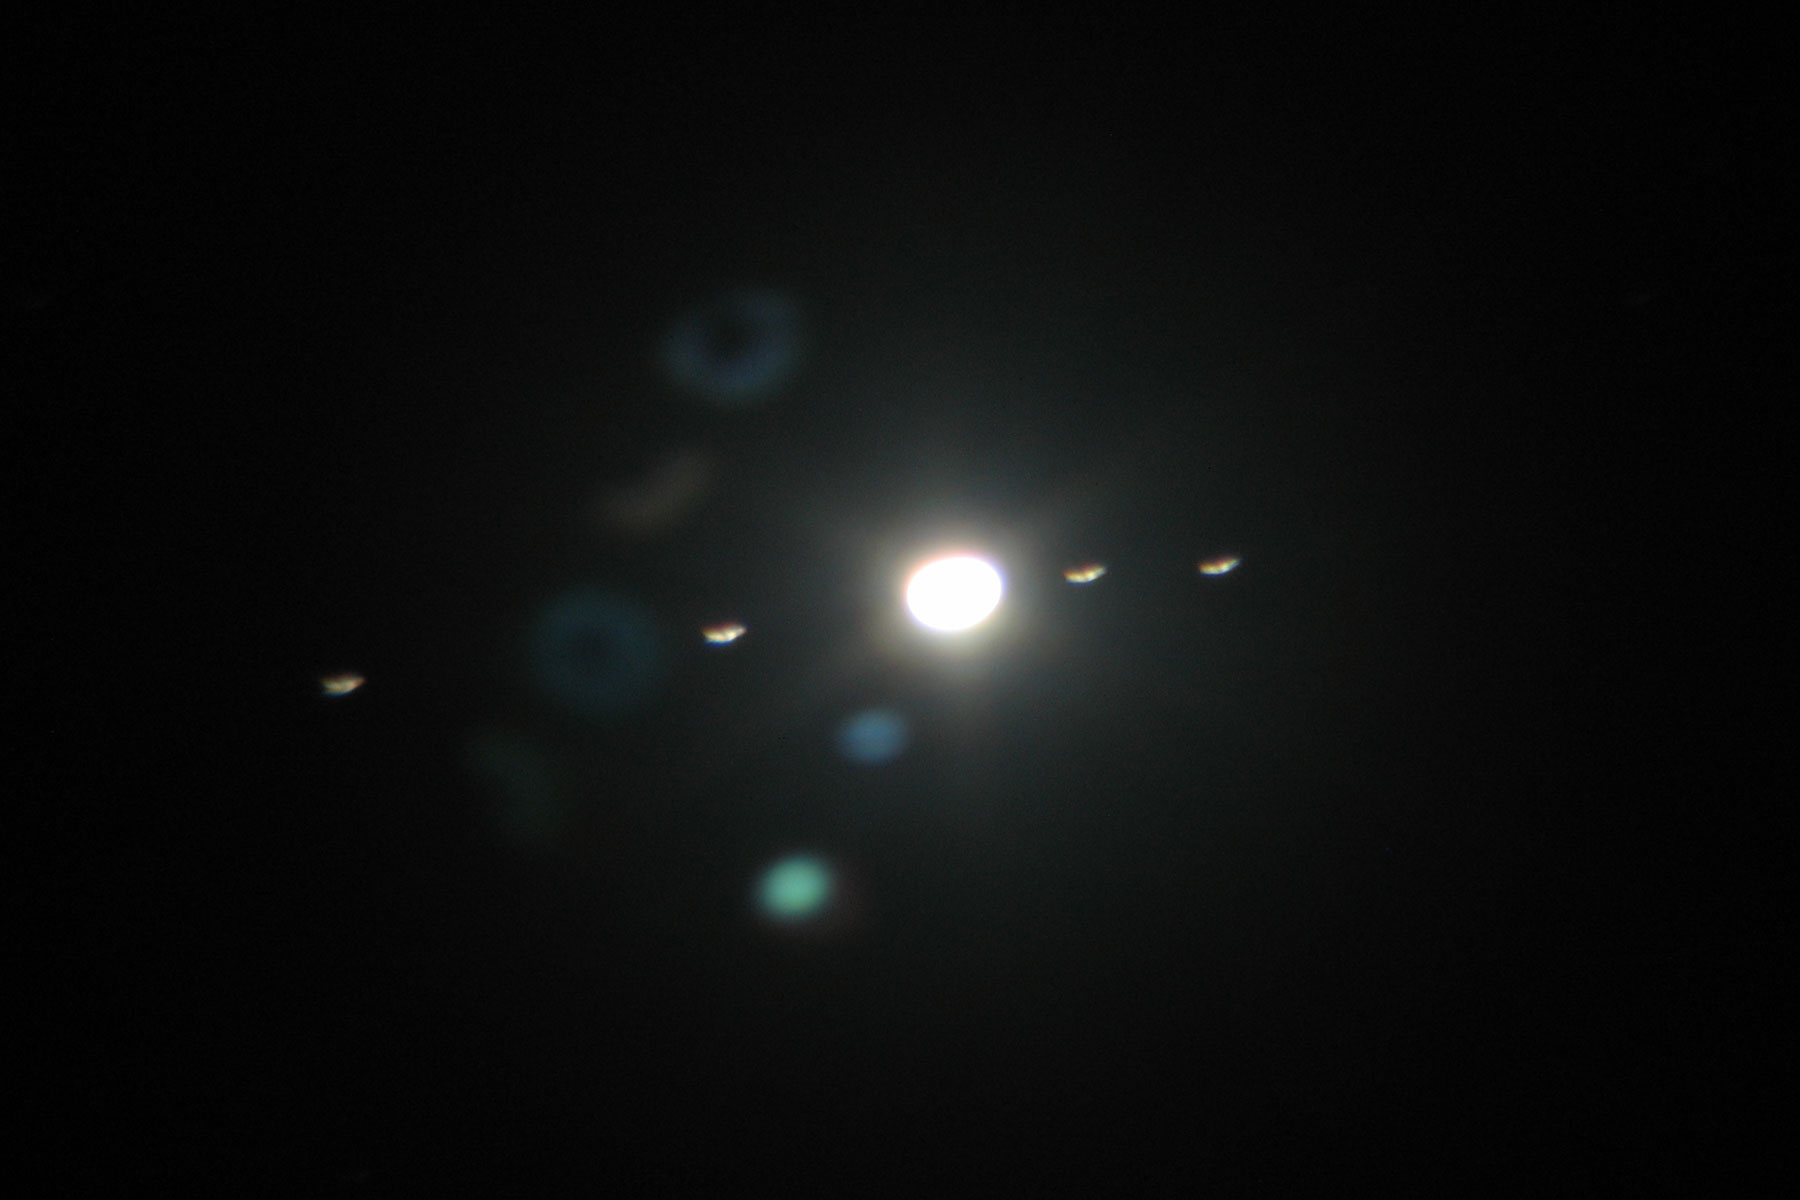 moons and jupiter in telescope - photo #19